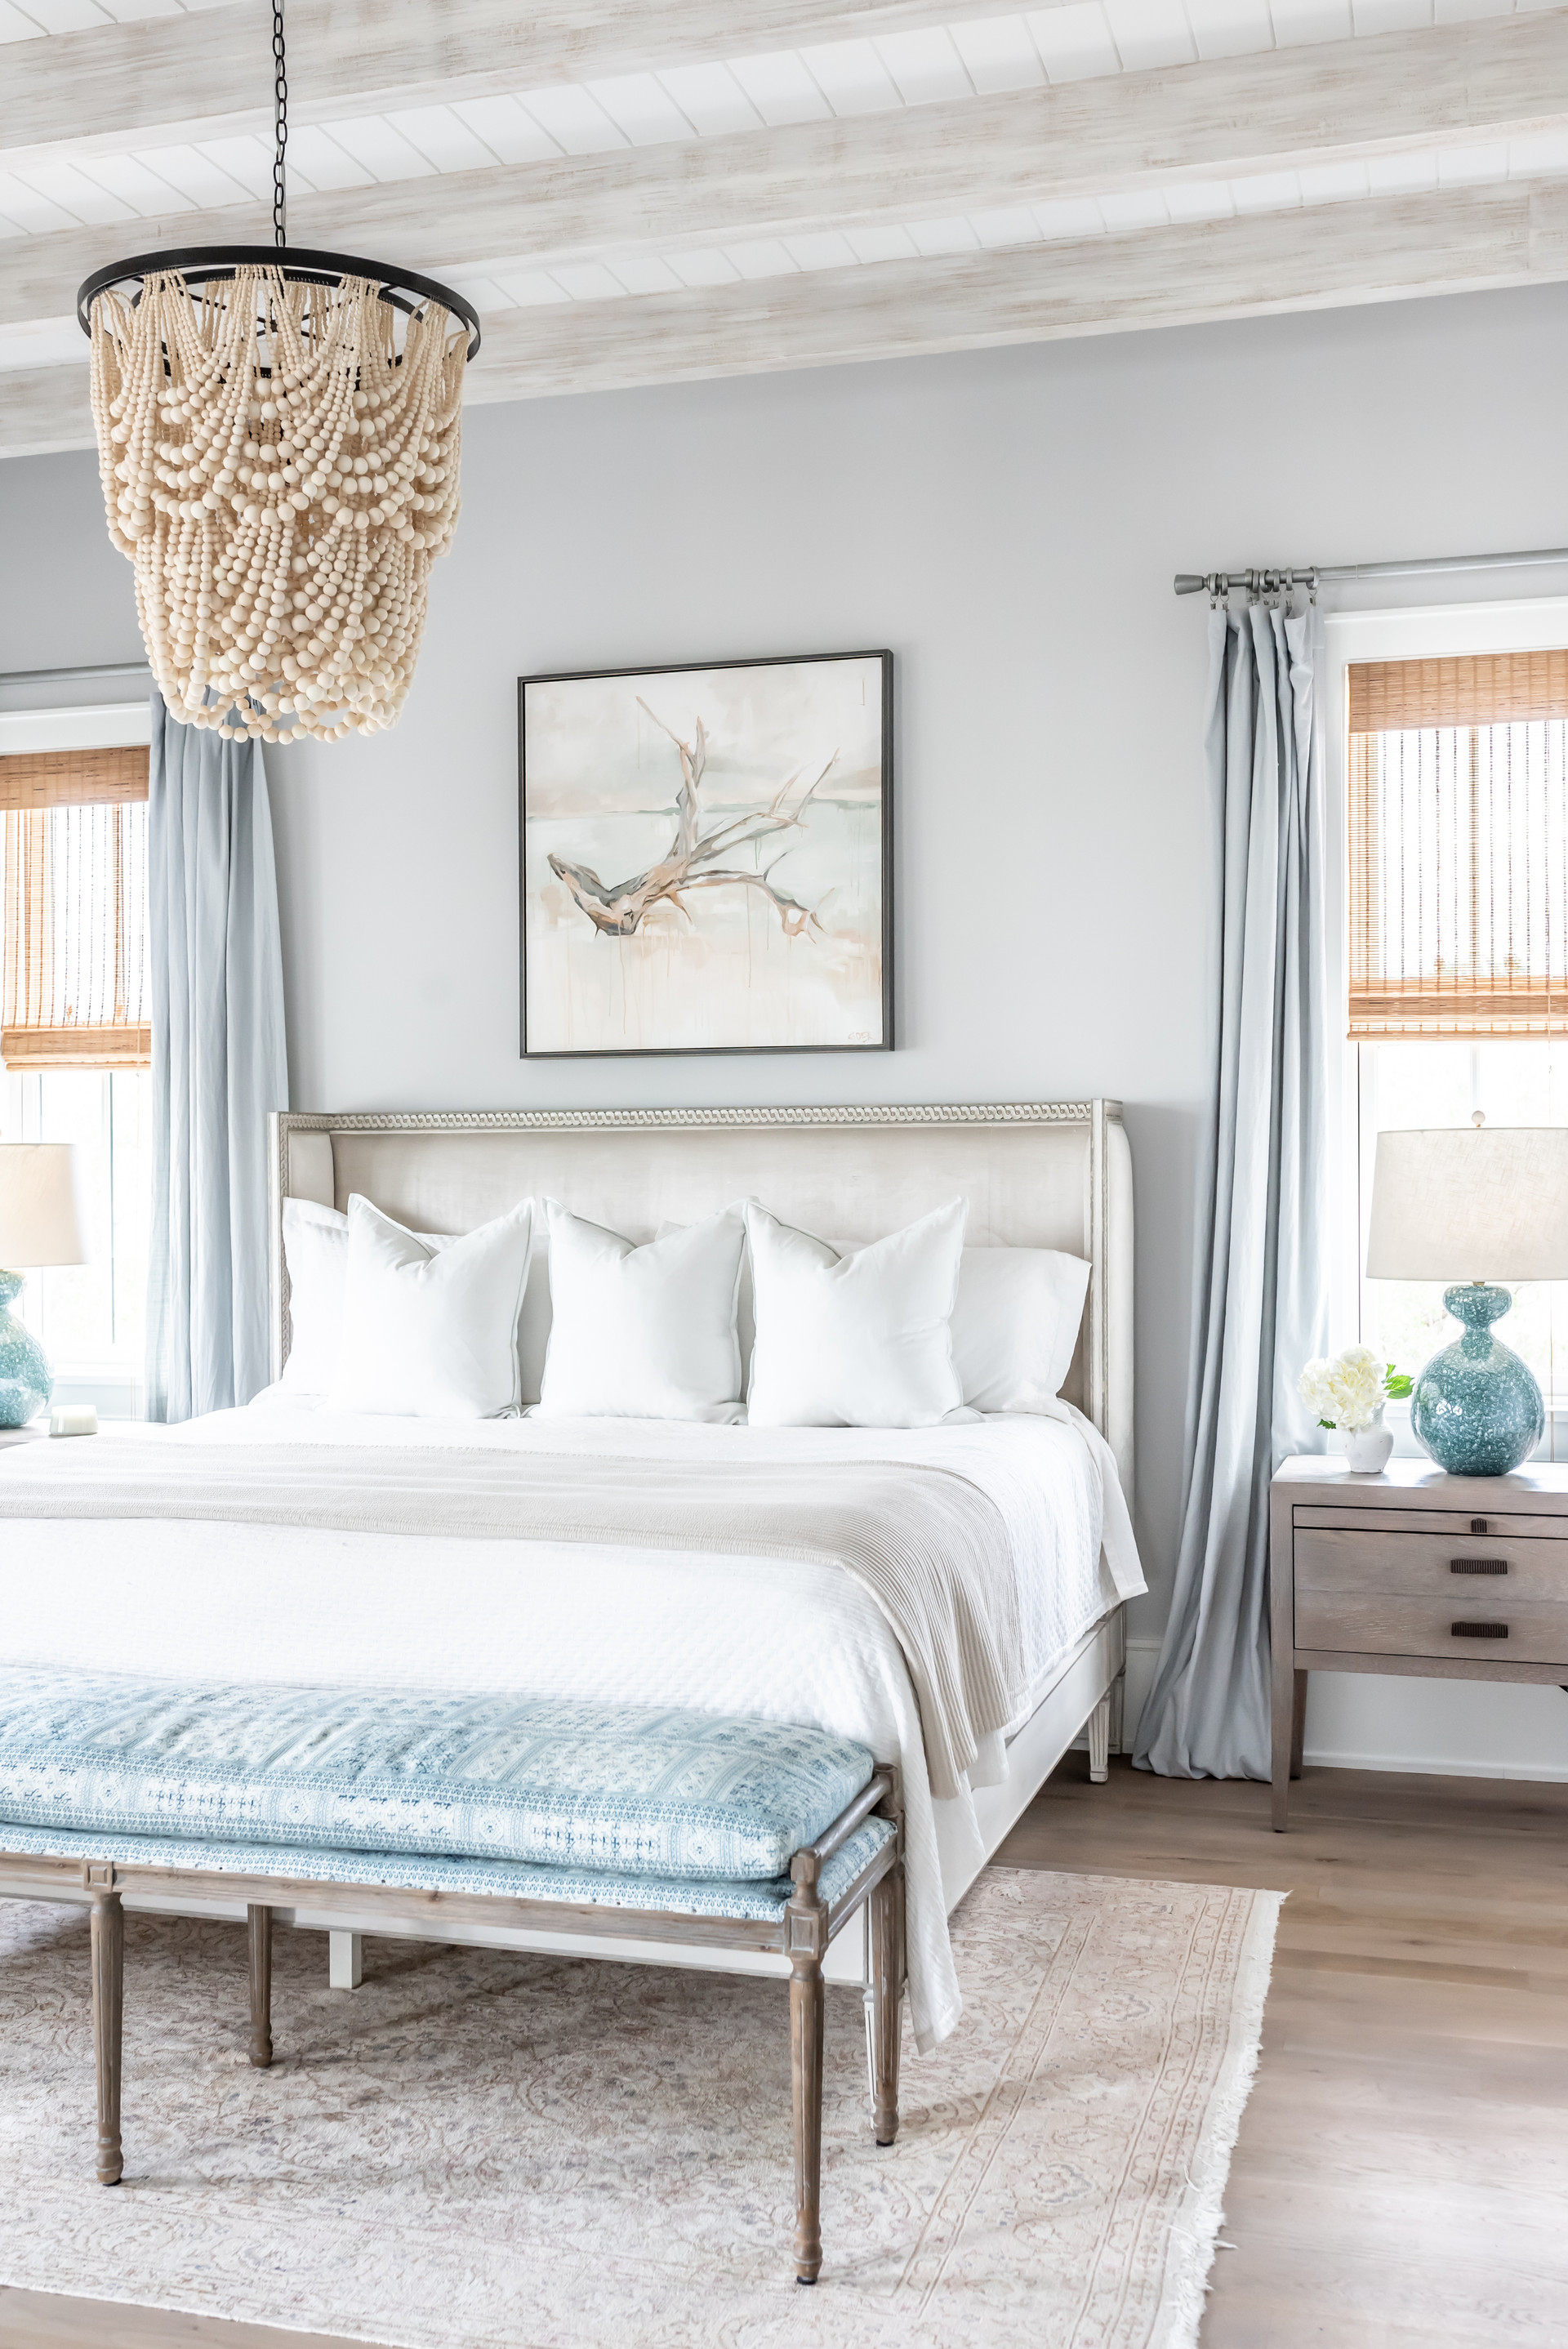 ADC-May1-2019-Master-Bedroom-12.jpg